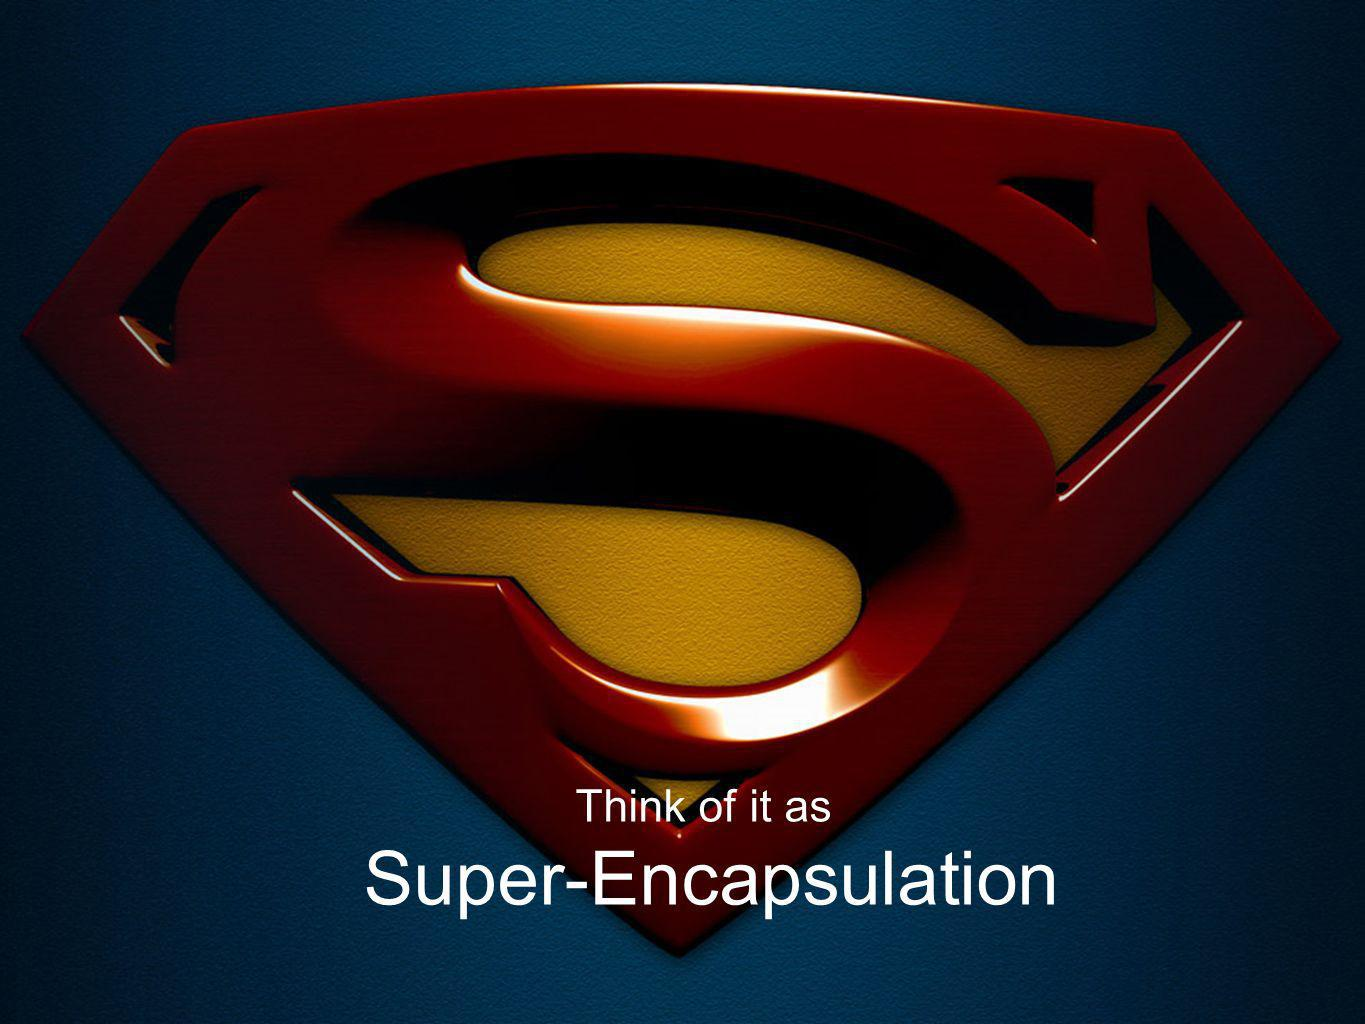 6 Think of it as Super-Encapsulation